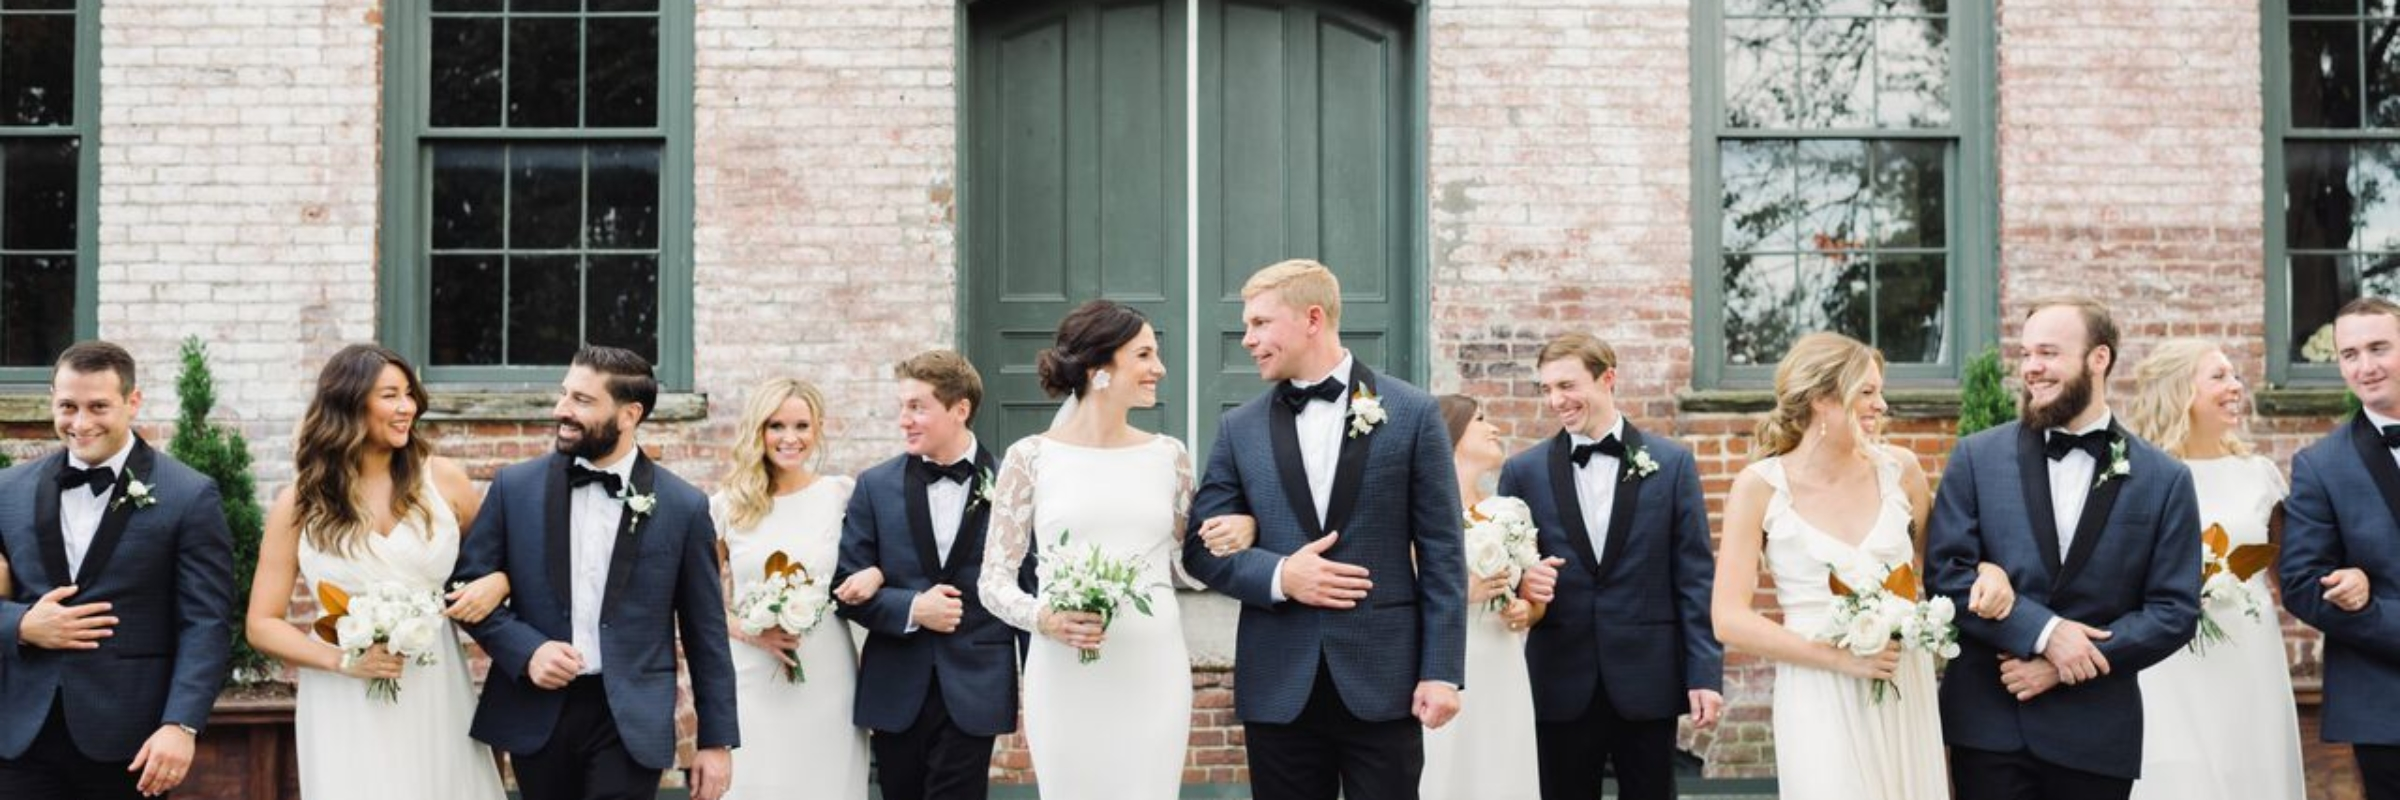 Weddings at Melrose Knitting Mill